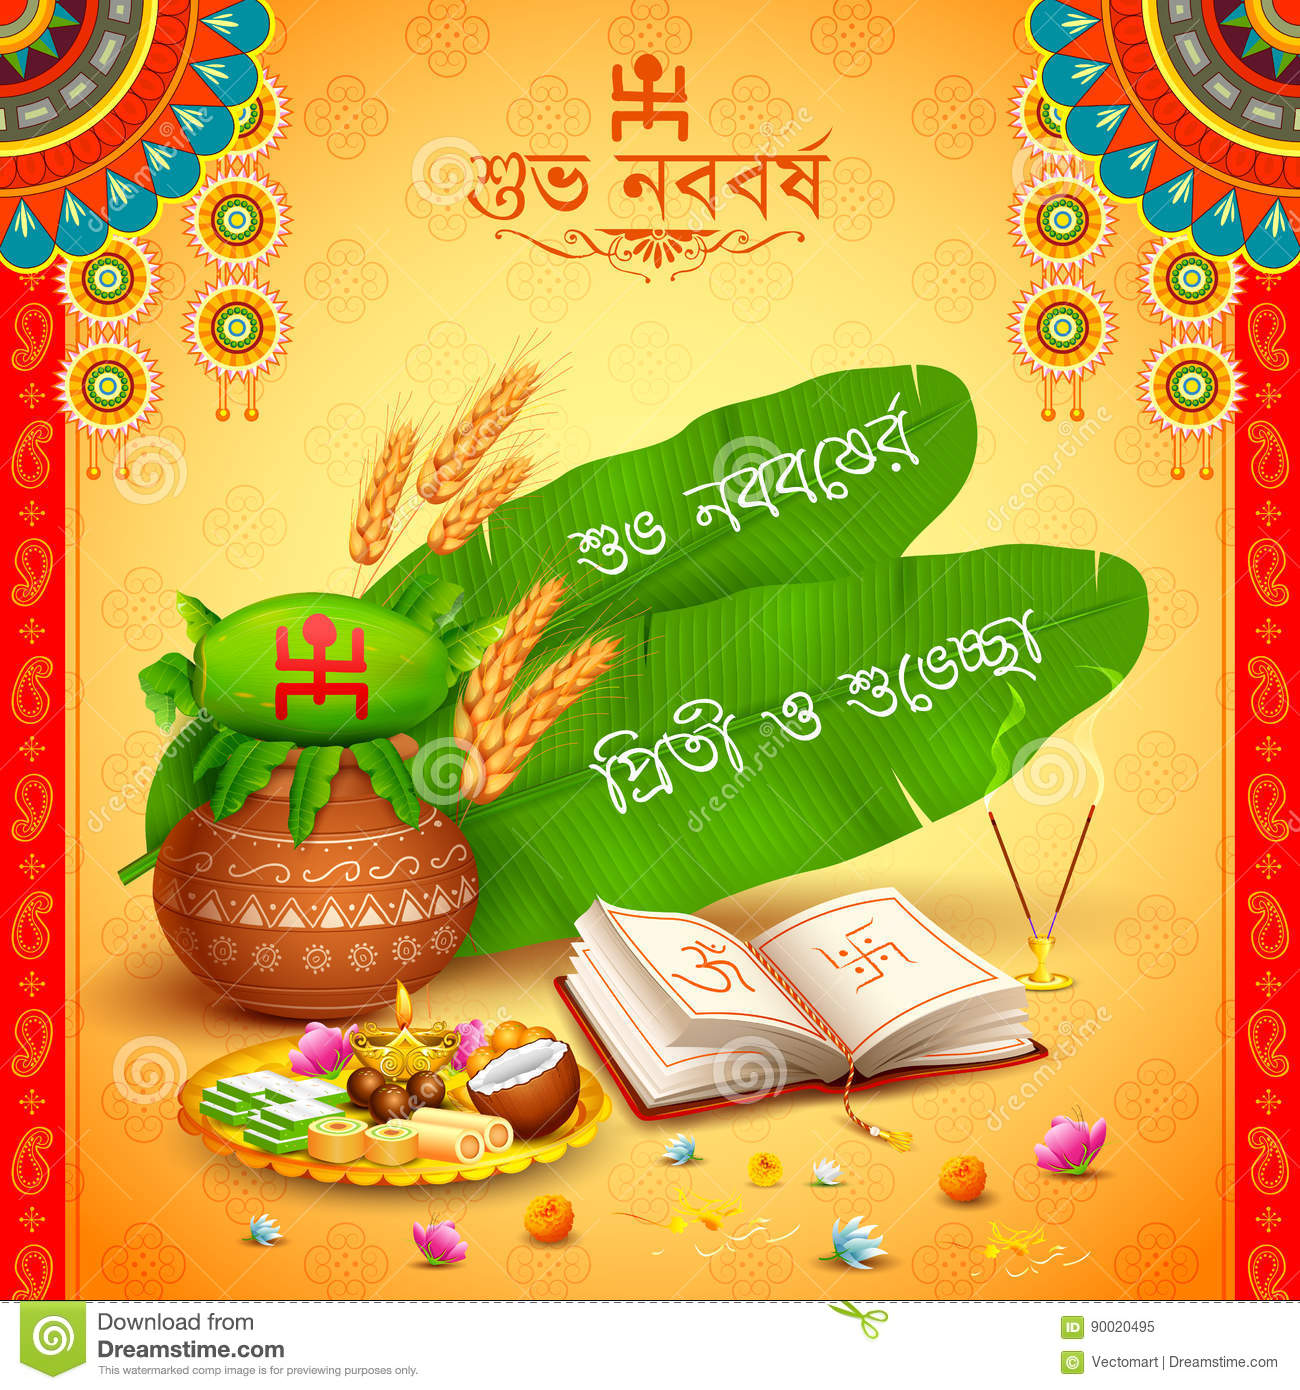 Greeting background with bengali text subho nababarsha priti o greeting background with bengali text subho nababarsha priti o subhecha meaning love and wishes for happy m4hsunfo